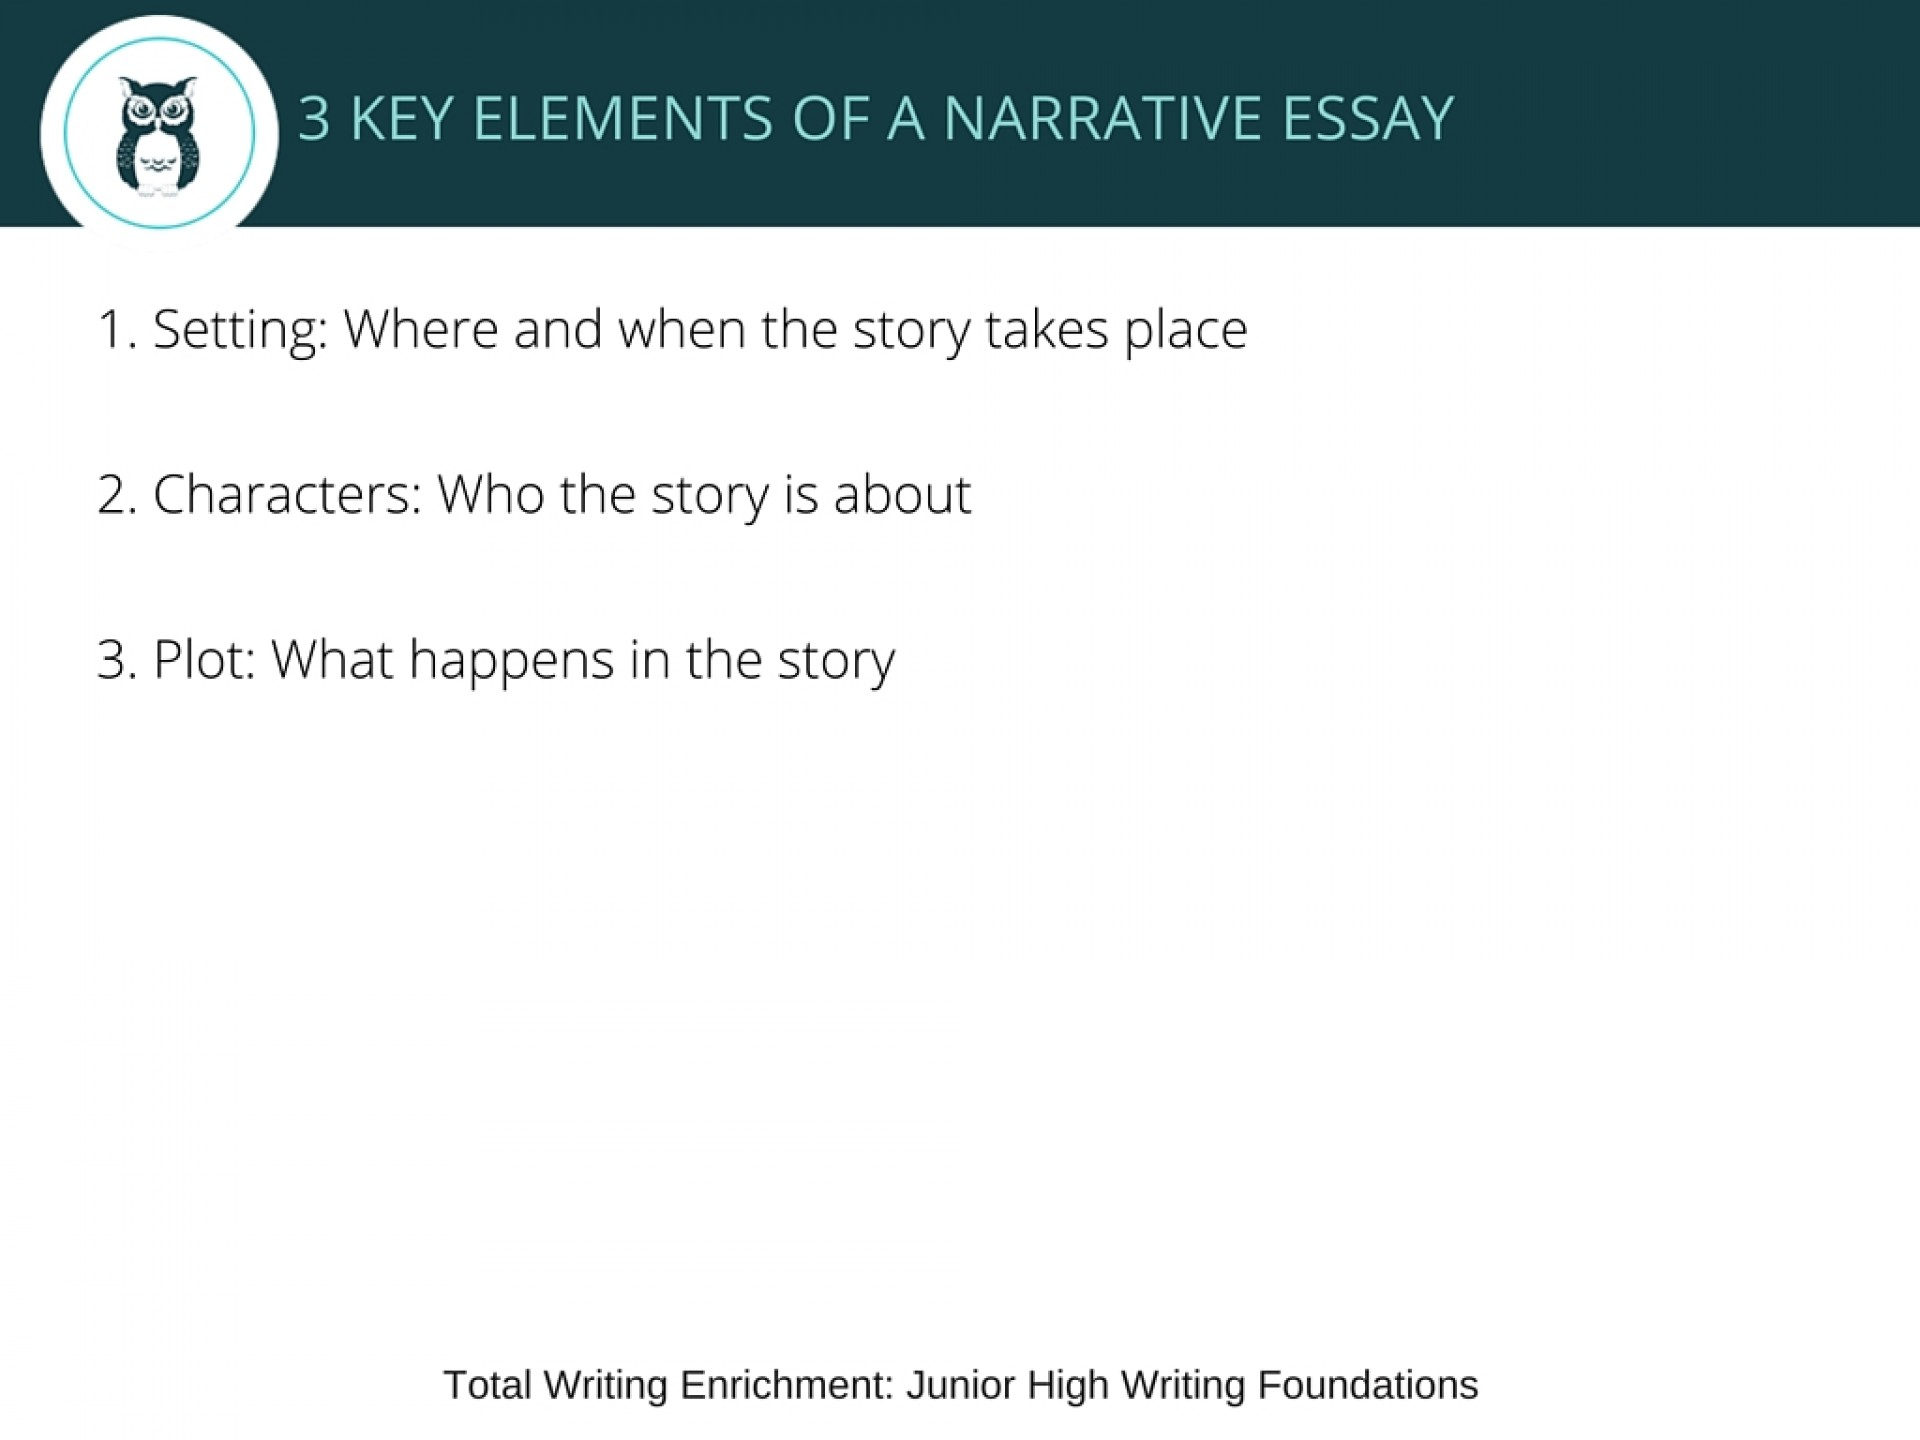 002 Jr High Writing Foundations Lesson Narrative Essay Elements Of Excellent In Philippine Literature Pdf 1920